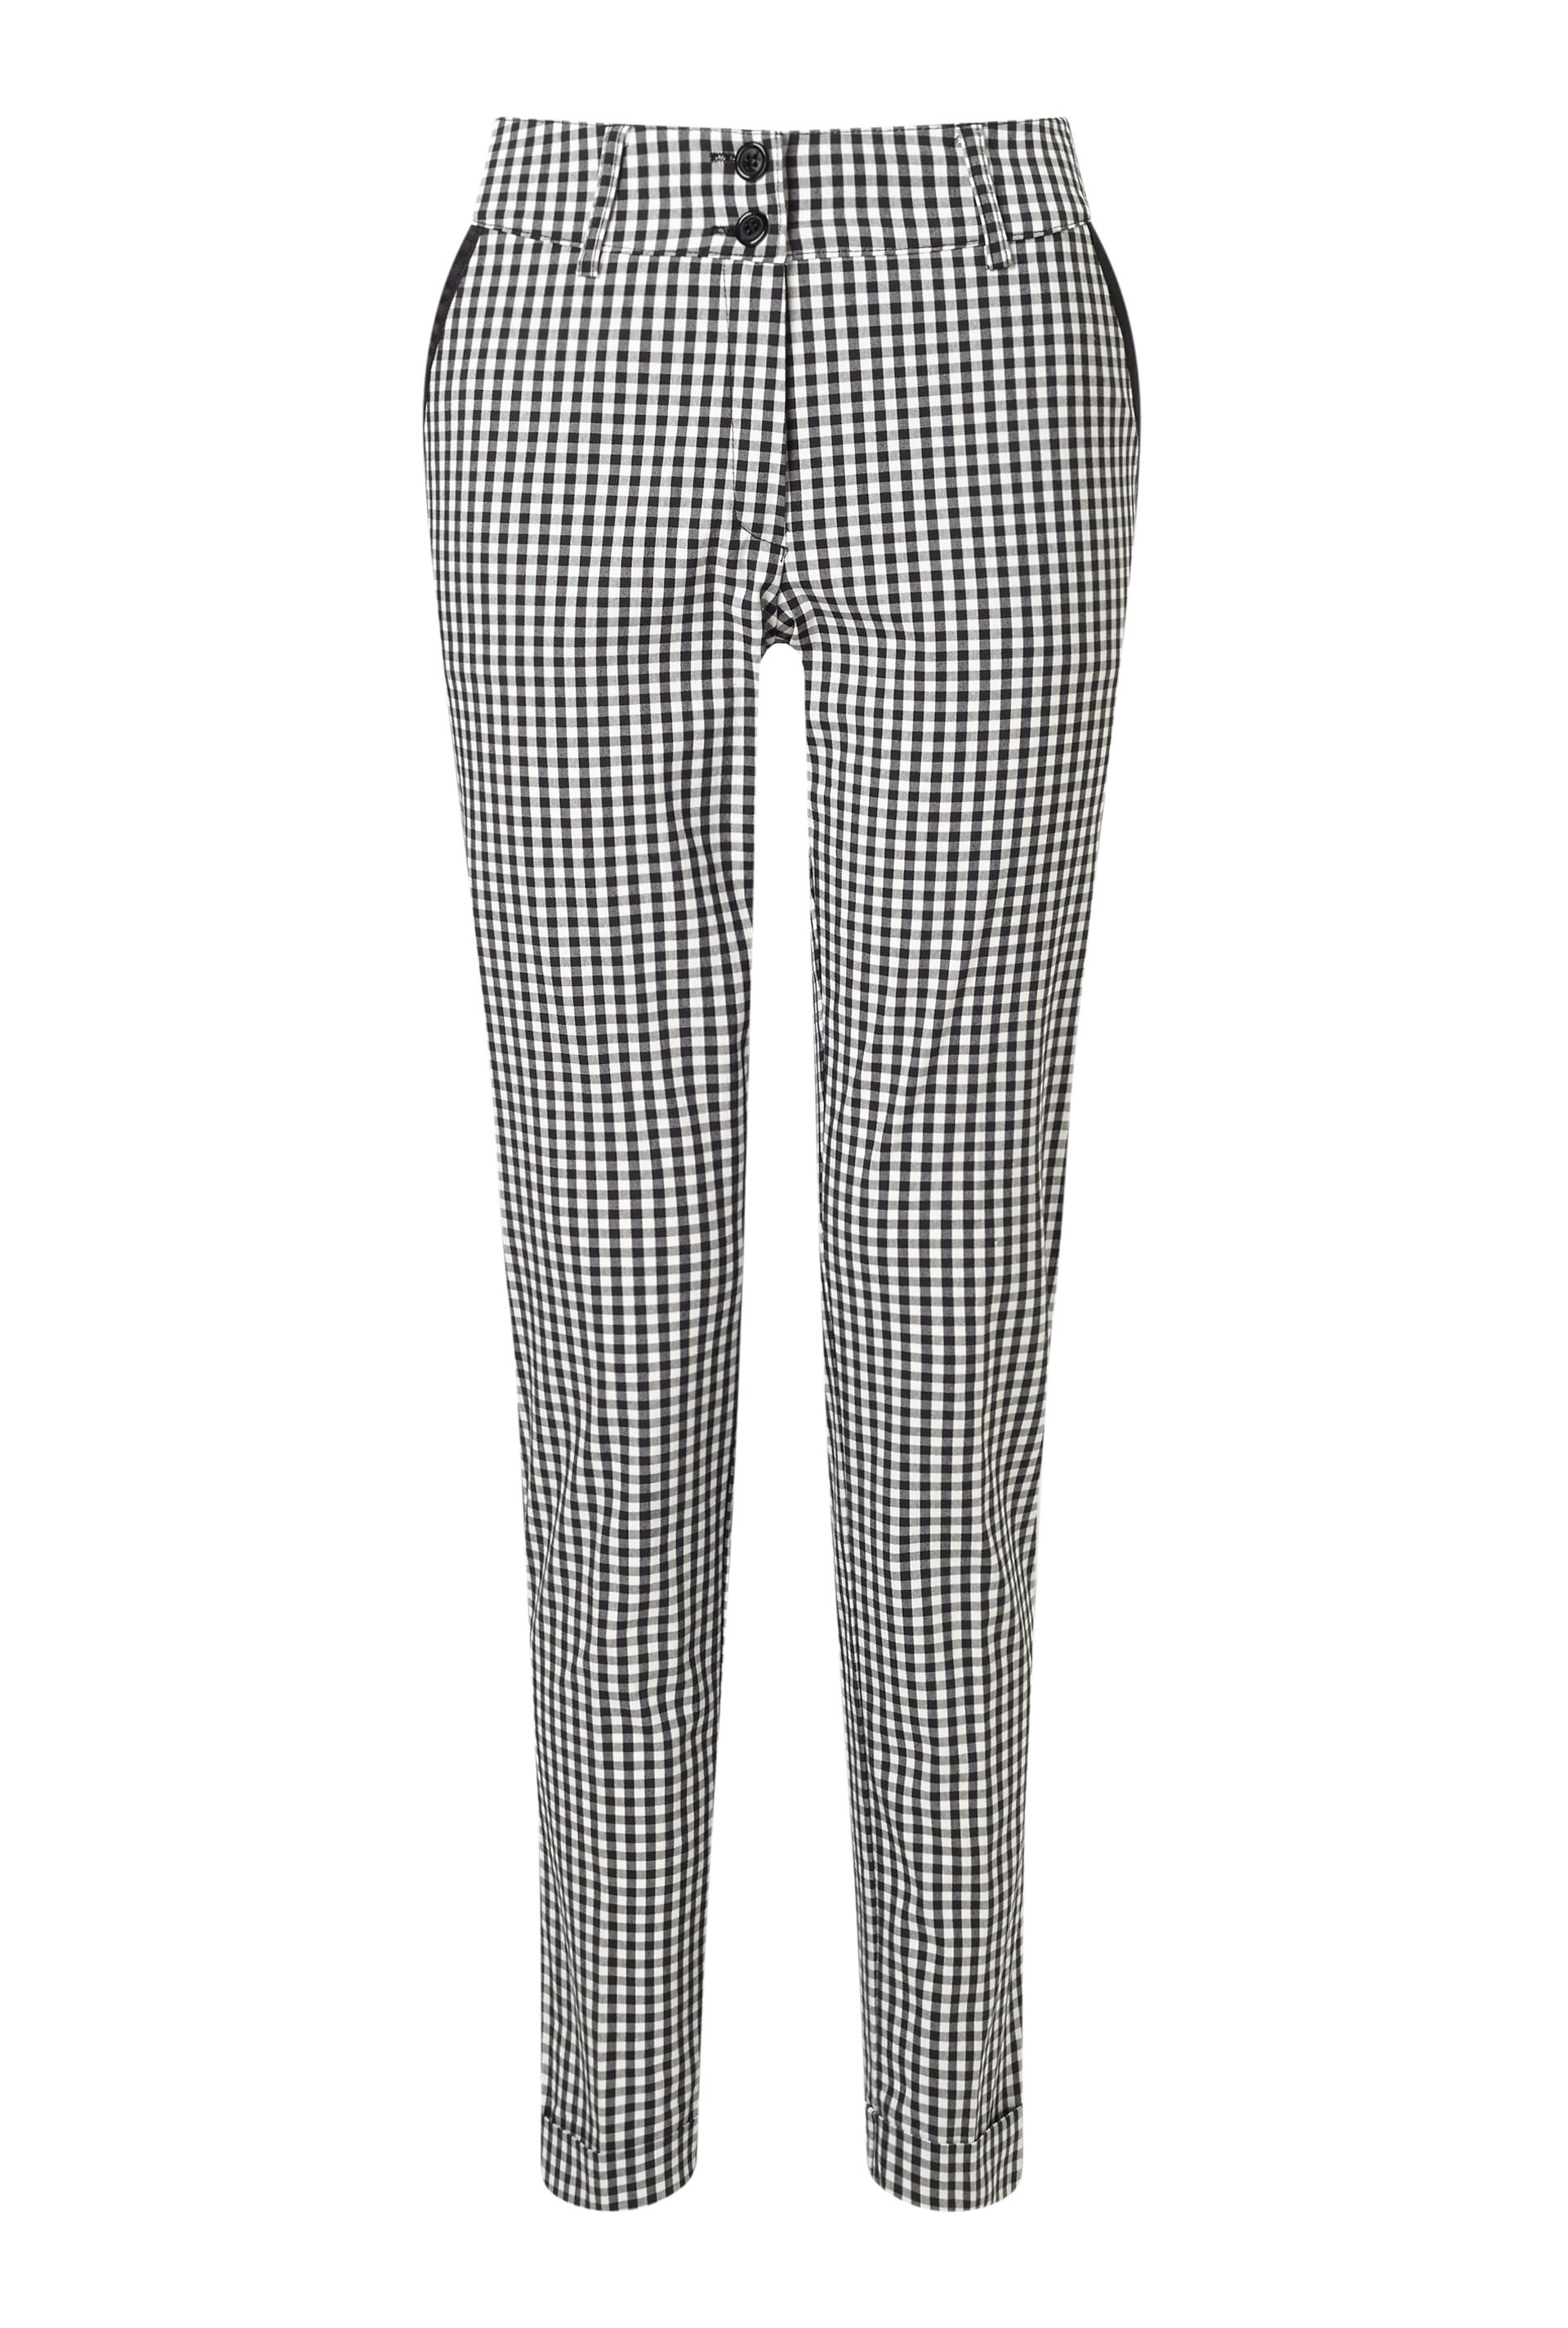 James Lakeland Gingham Turn Up Trousers, White